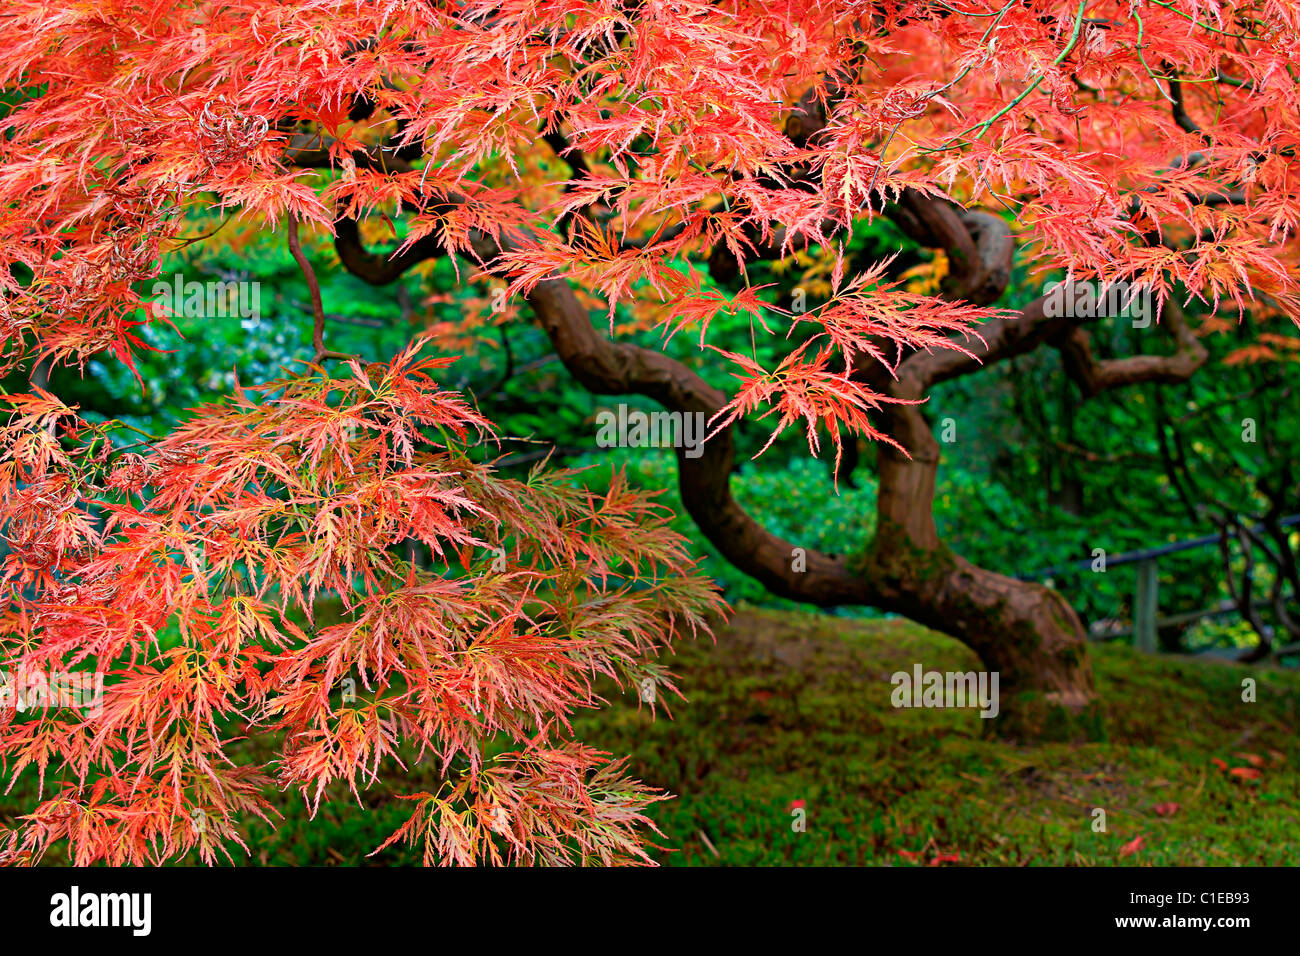 Old Japanese Red Lace Leaf Maple Tree in Autumn 2 Stock Photo